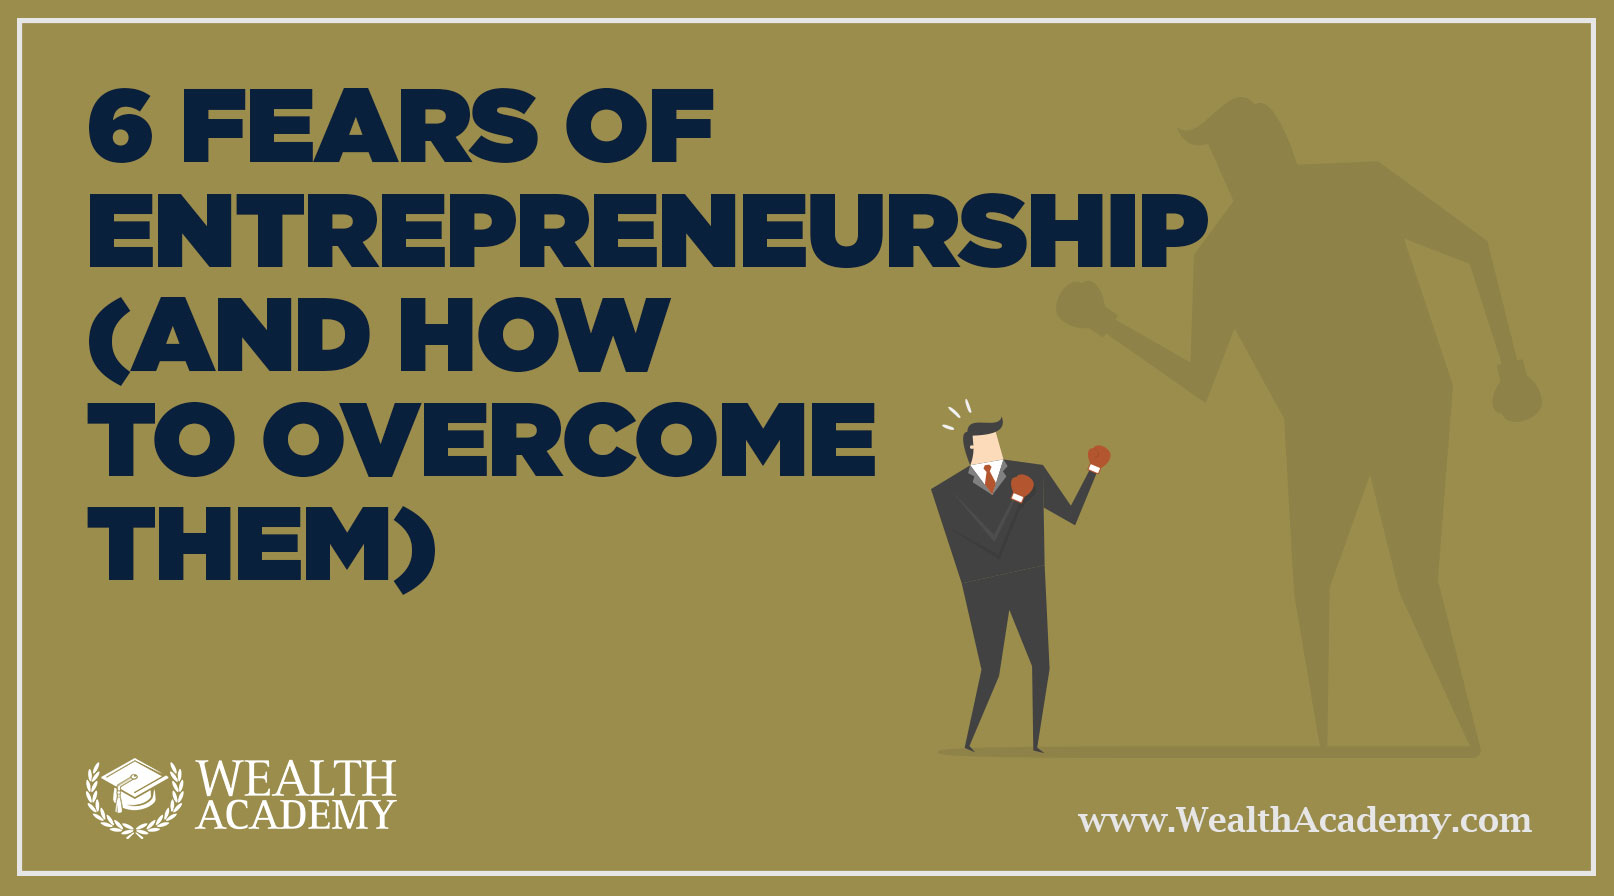 entrepreneurship examples,characteristics of entrepreneurship,types of entrepreneurship,importance of entrepreneurship,entrepreneurship pdf,entrepreneurship ppt,concept of entrepreneurship,entrepreneurship development